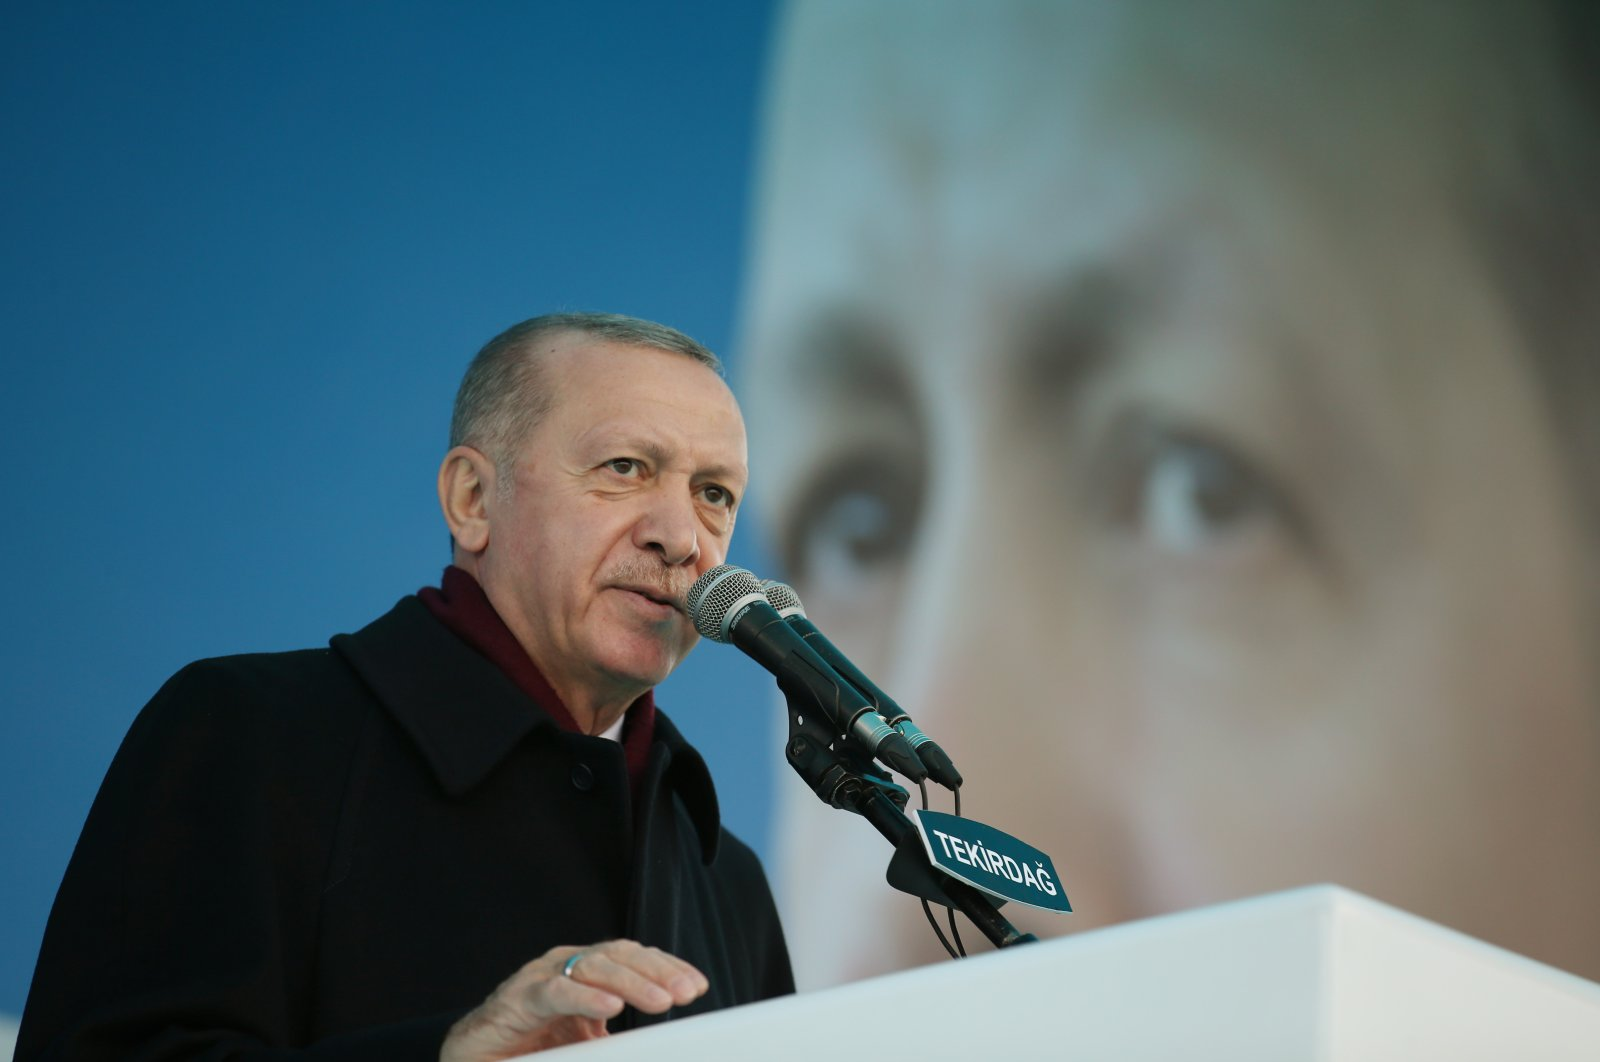 President Recep Tayyip Erdoğan delivers a speech at the provincial convention of his ruling Justice and Development Party (AK Party) in the northwestern province of Tekirdağ, Turkey, Nov. 13, 2020. (AA Photo)